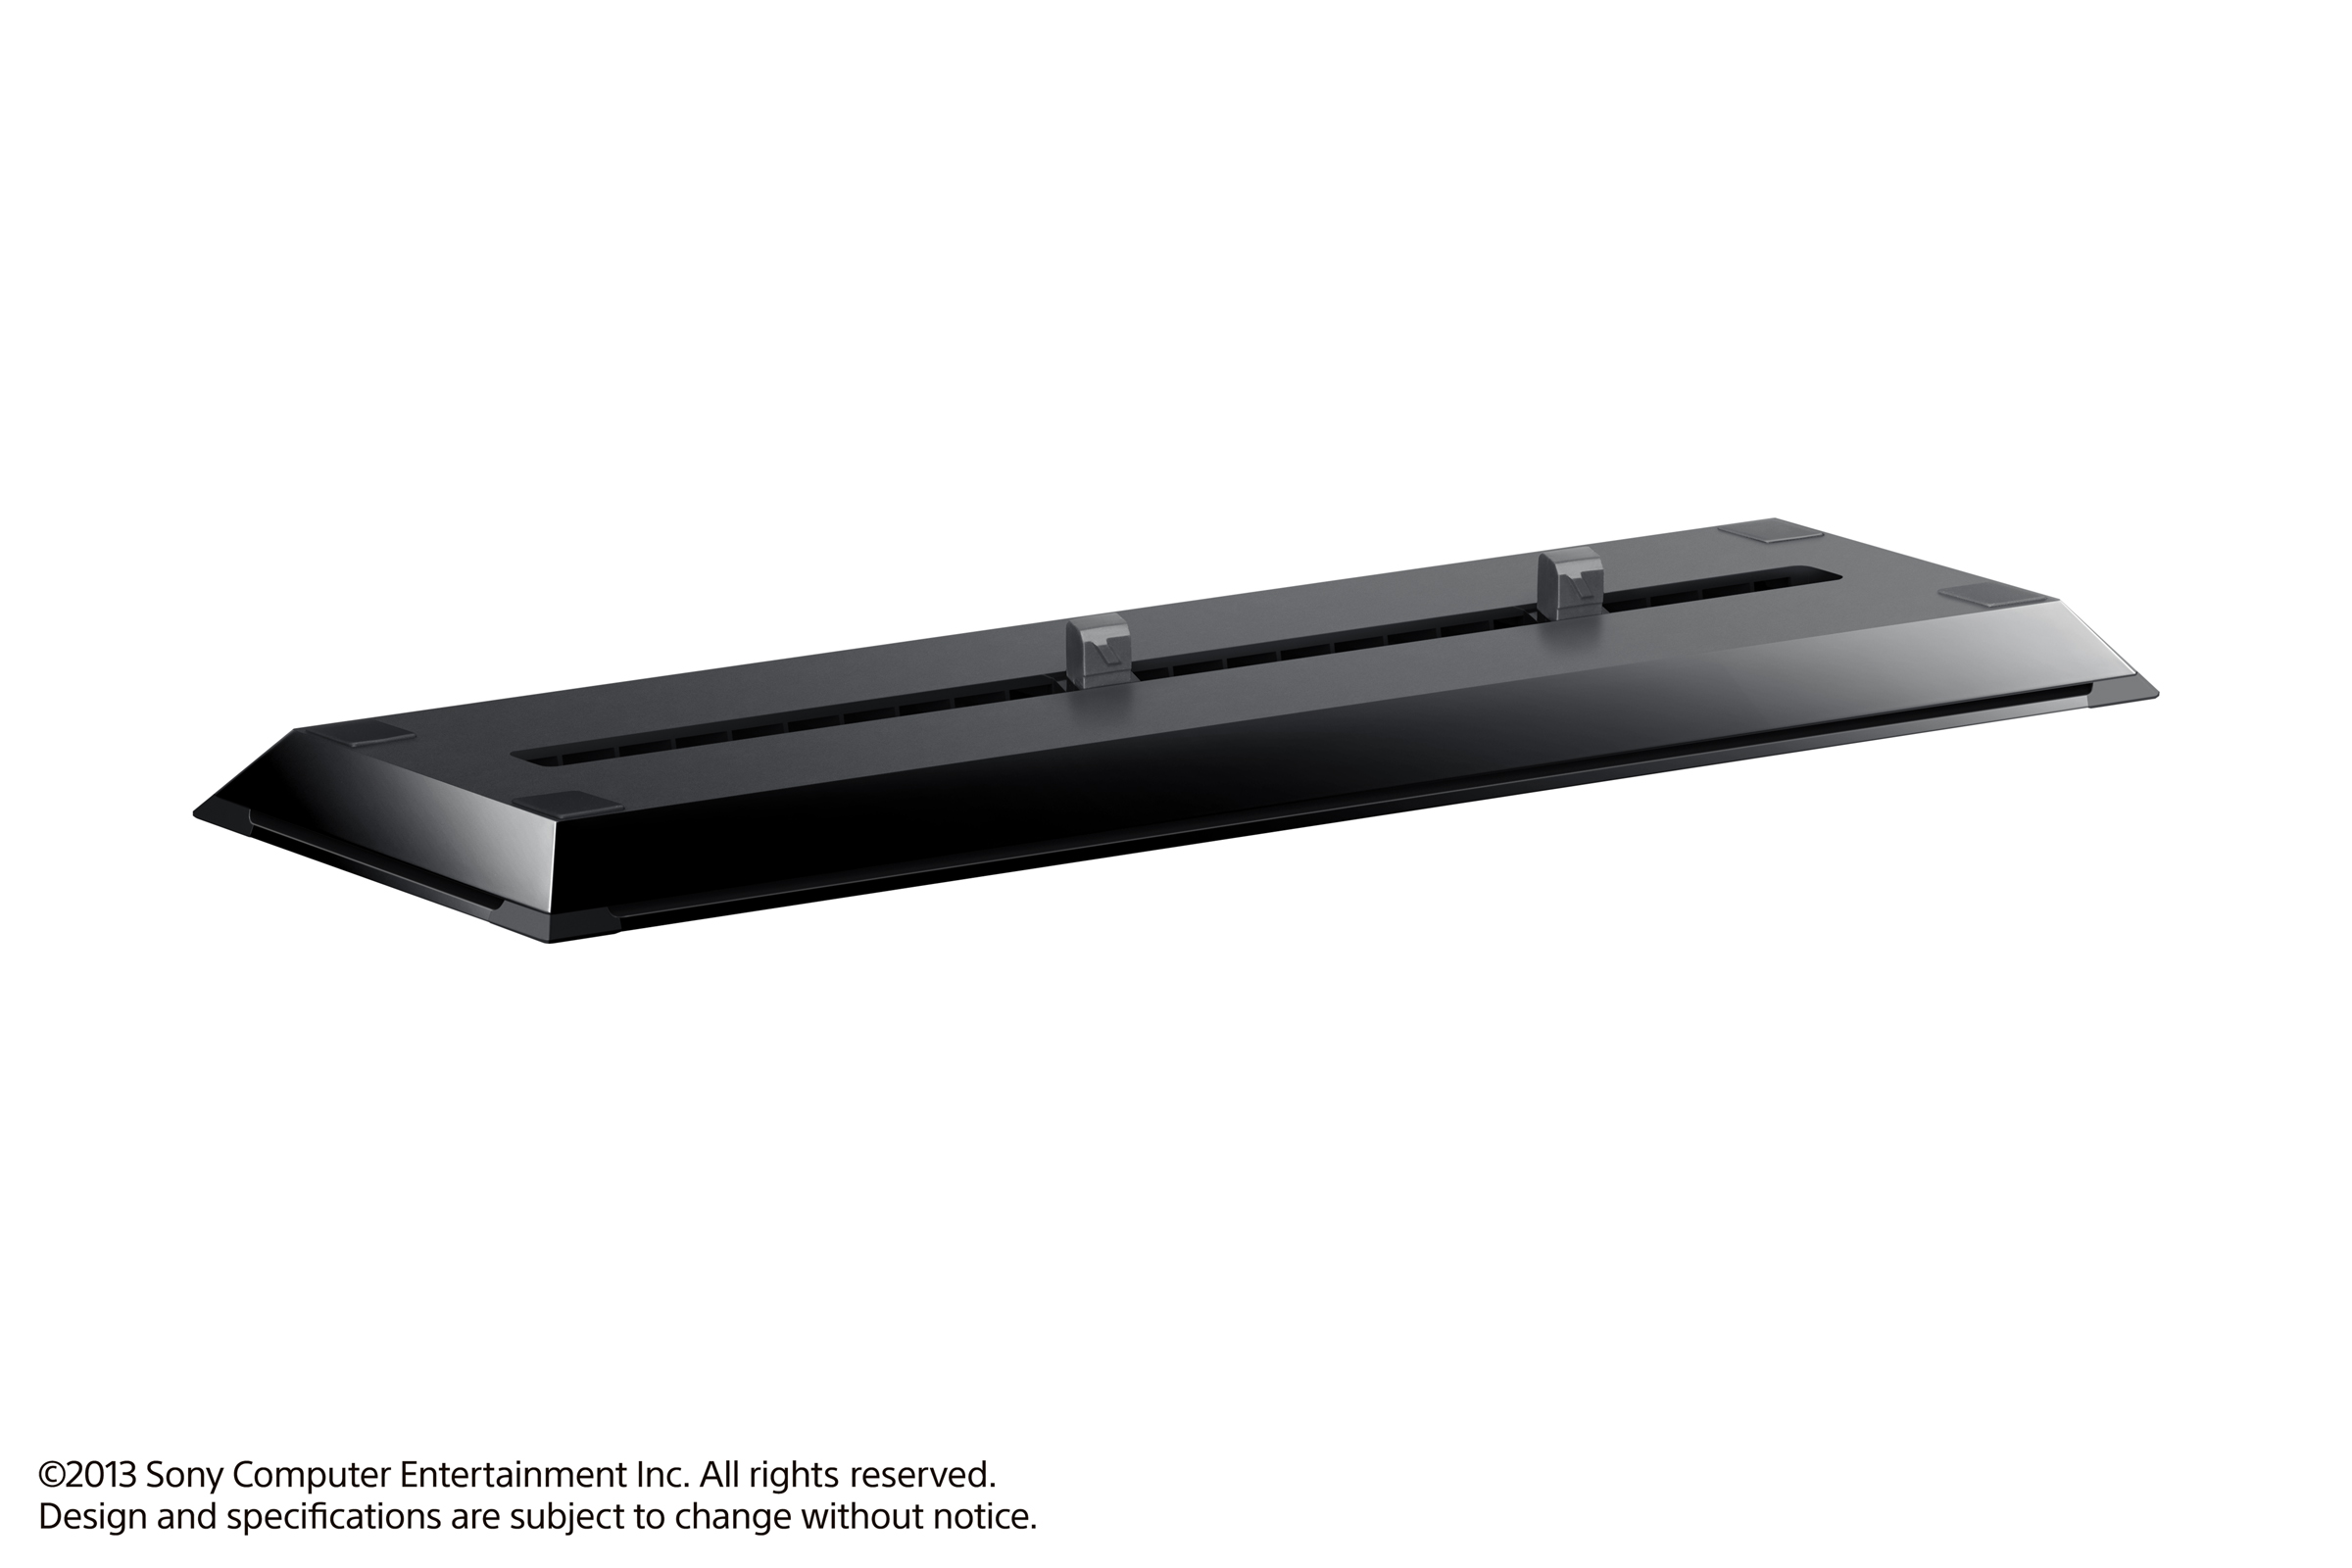 Playstation 4 Vertikal Stand PS4 Sony PS4 vertical stand